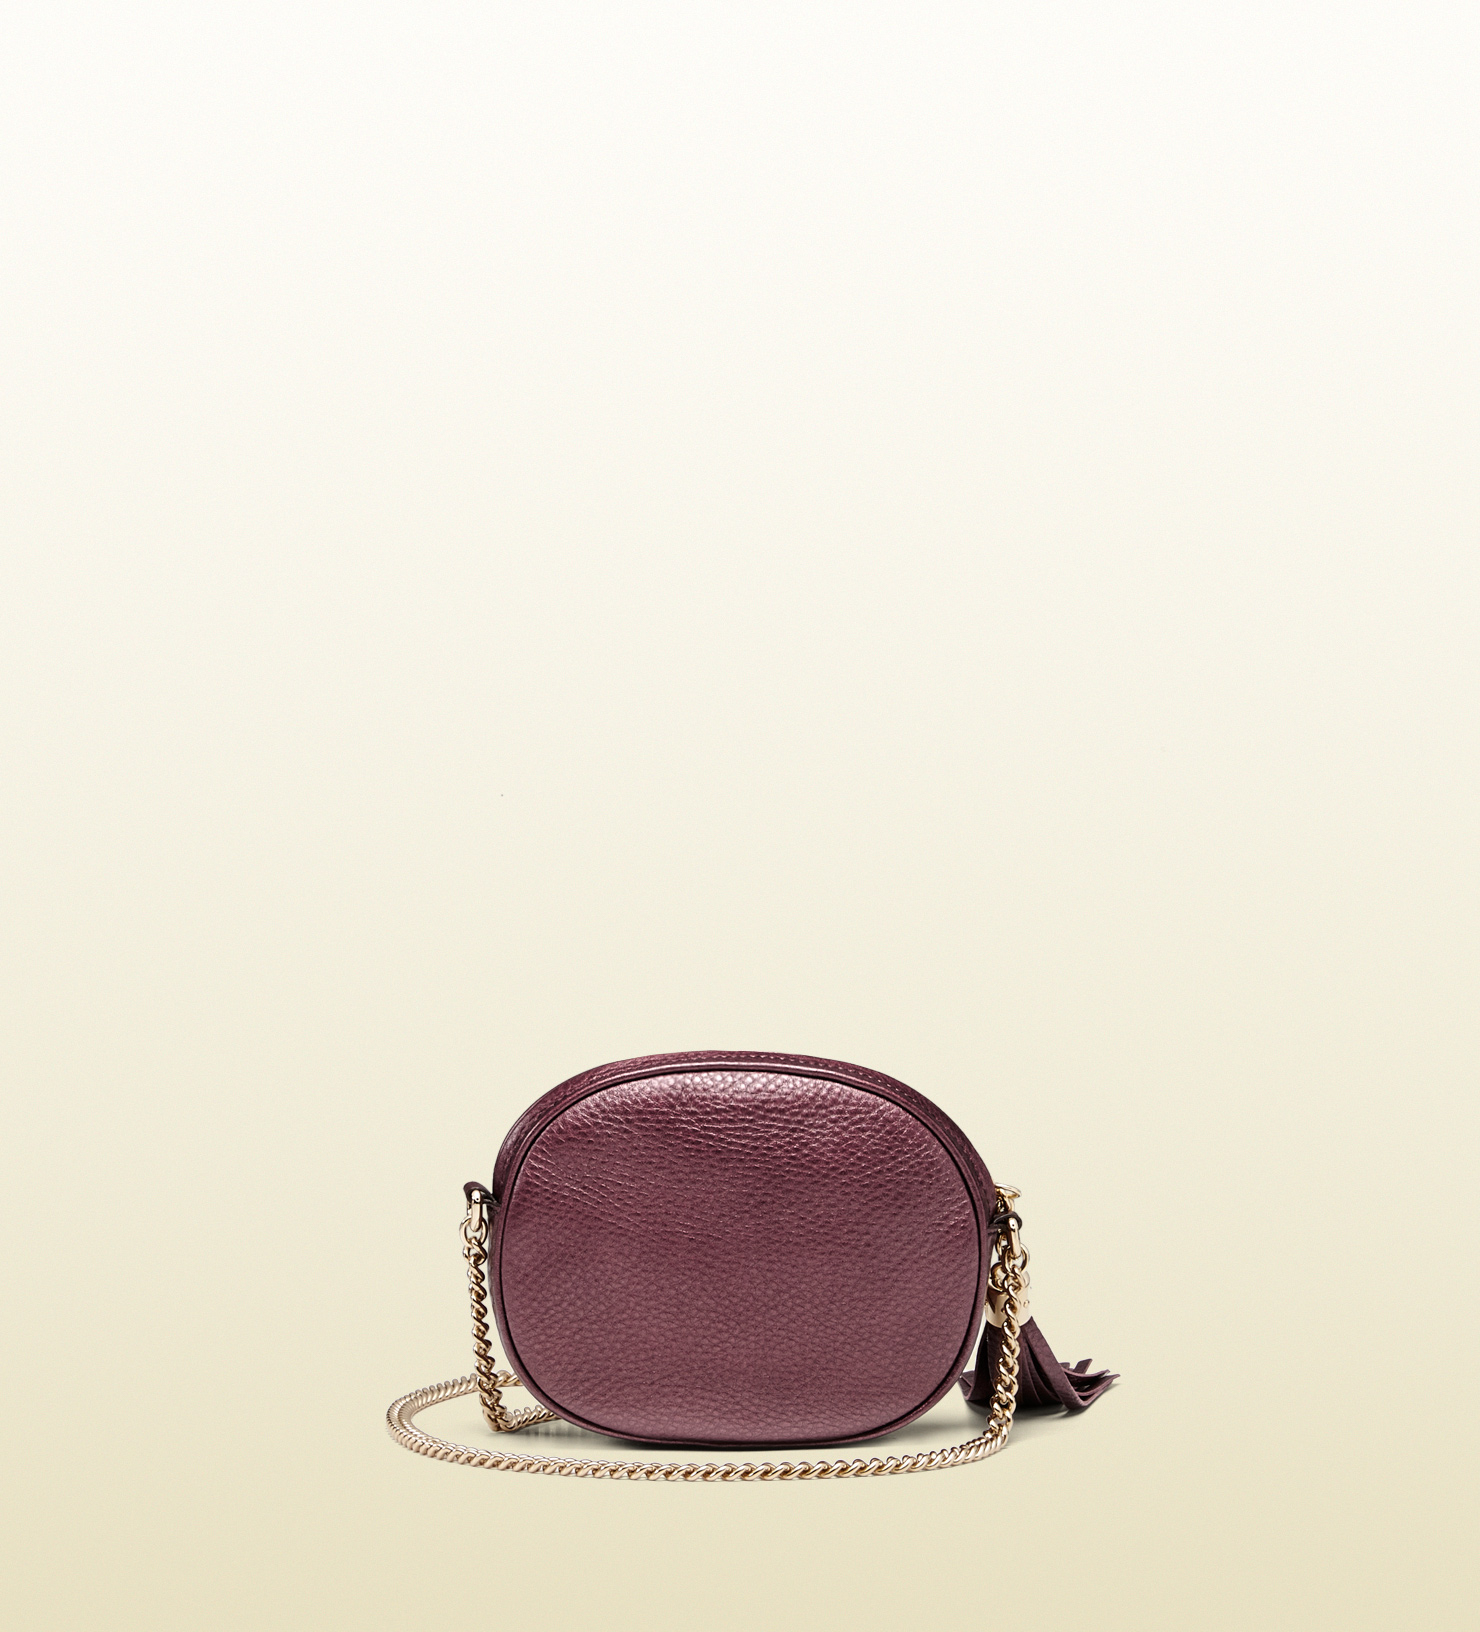 9474cf9227cc Gucci Soho Metallic Leather Mini Chain Bag in Purple - Lyst